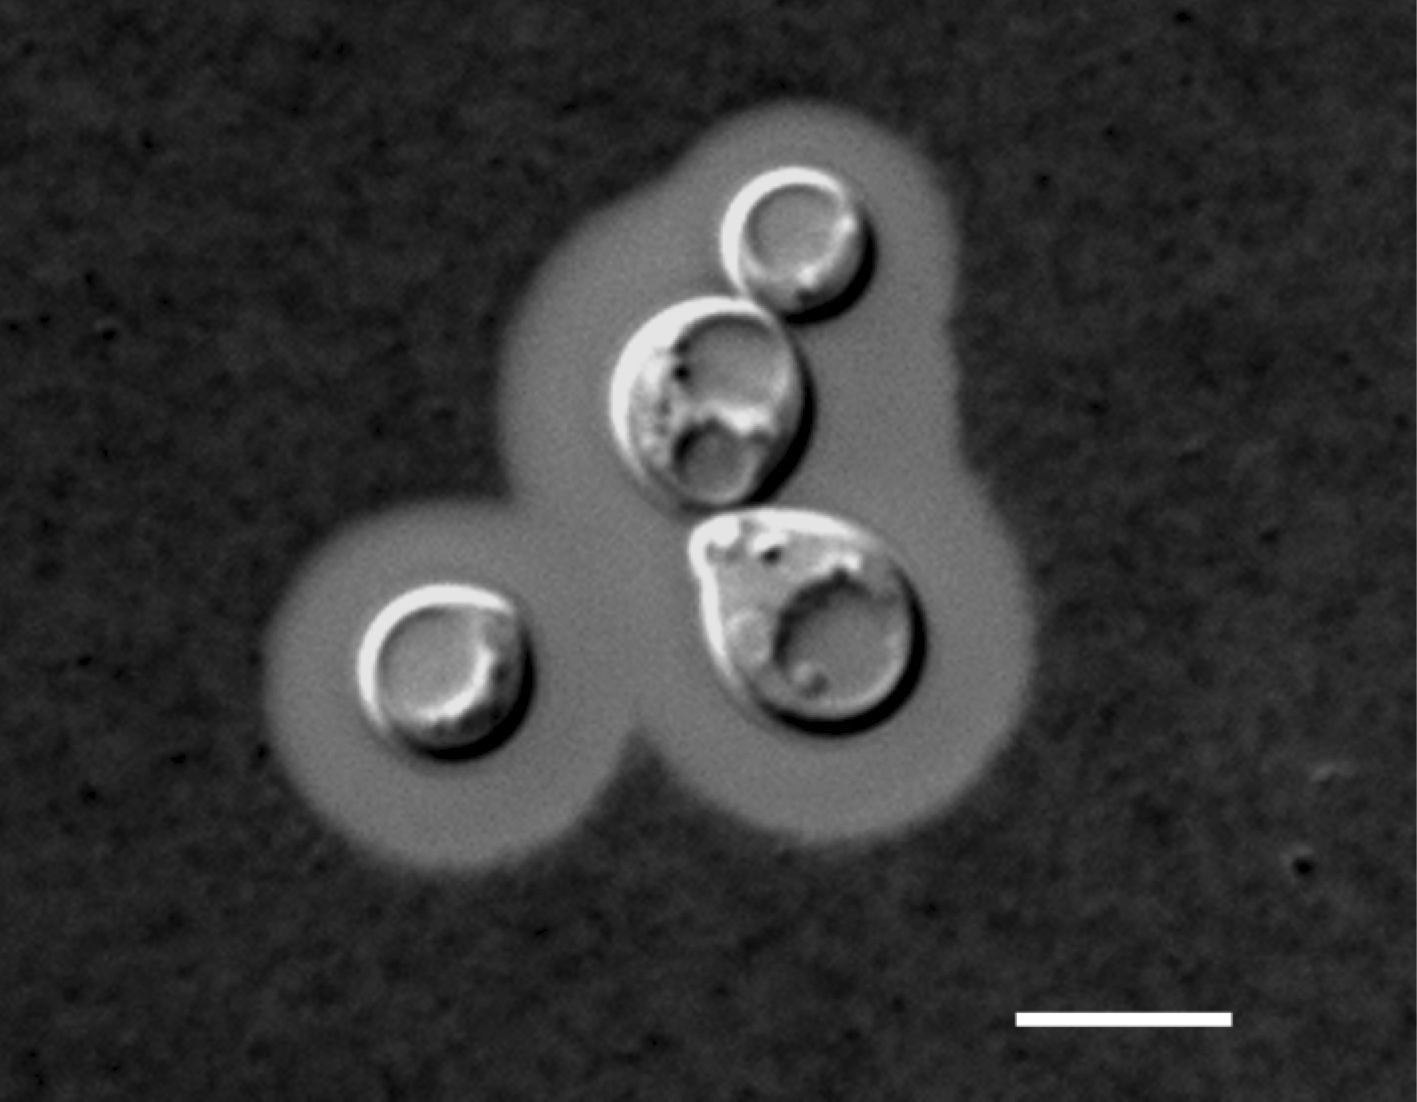 The image of Cryptococcus gattii